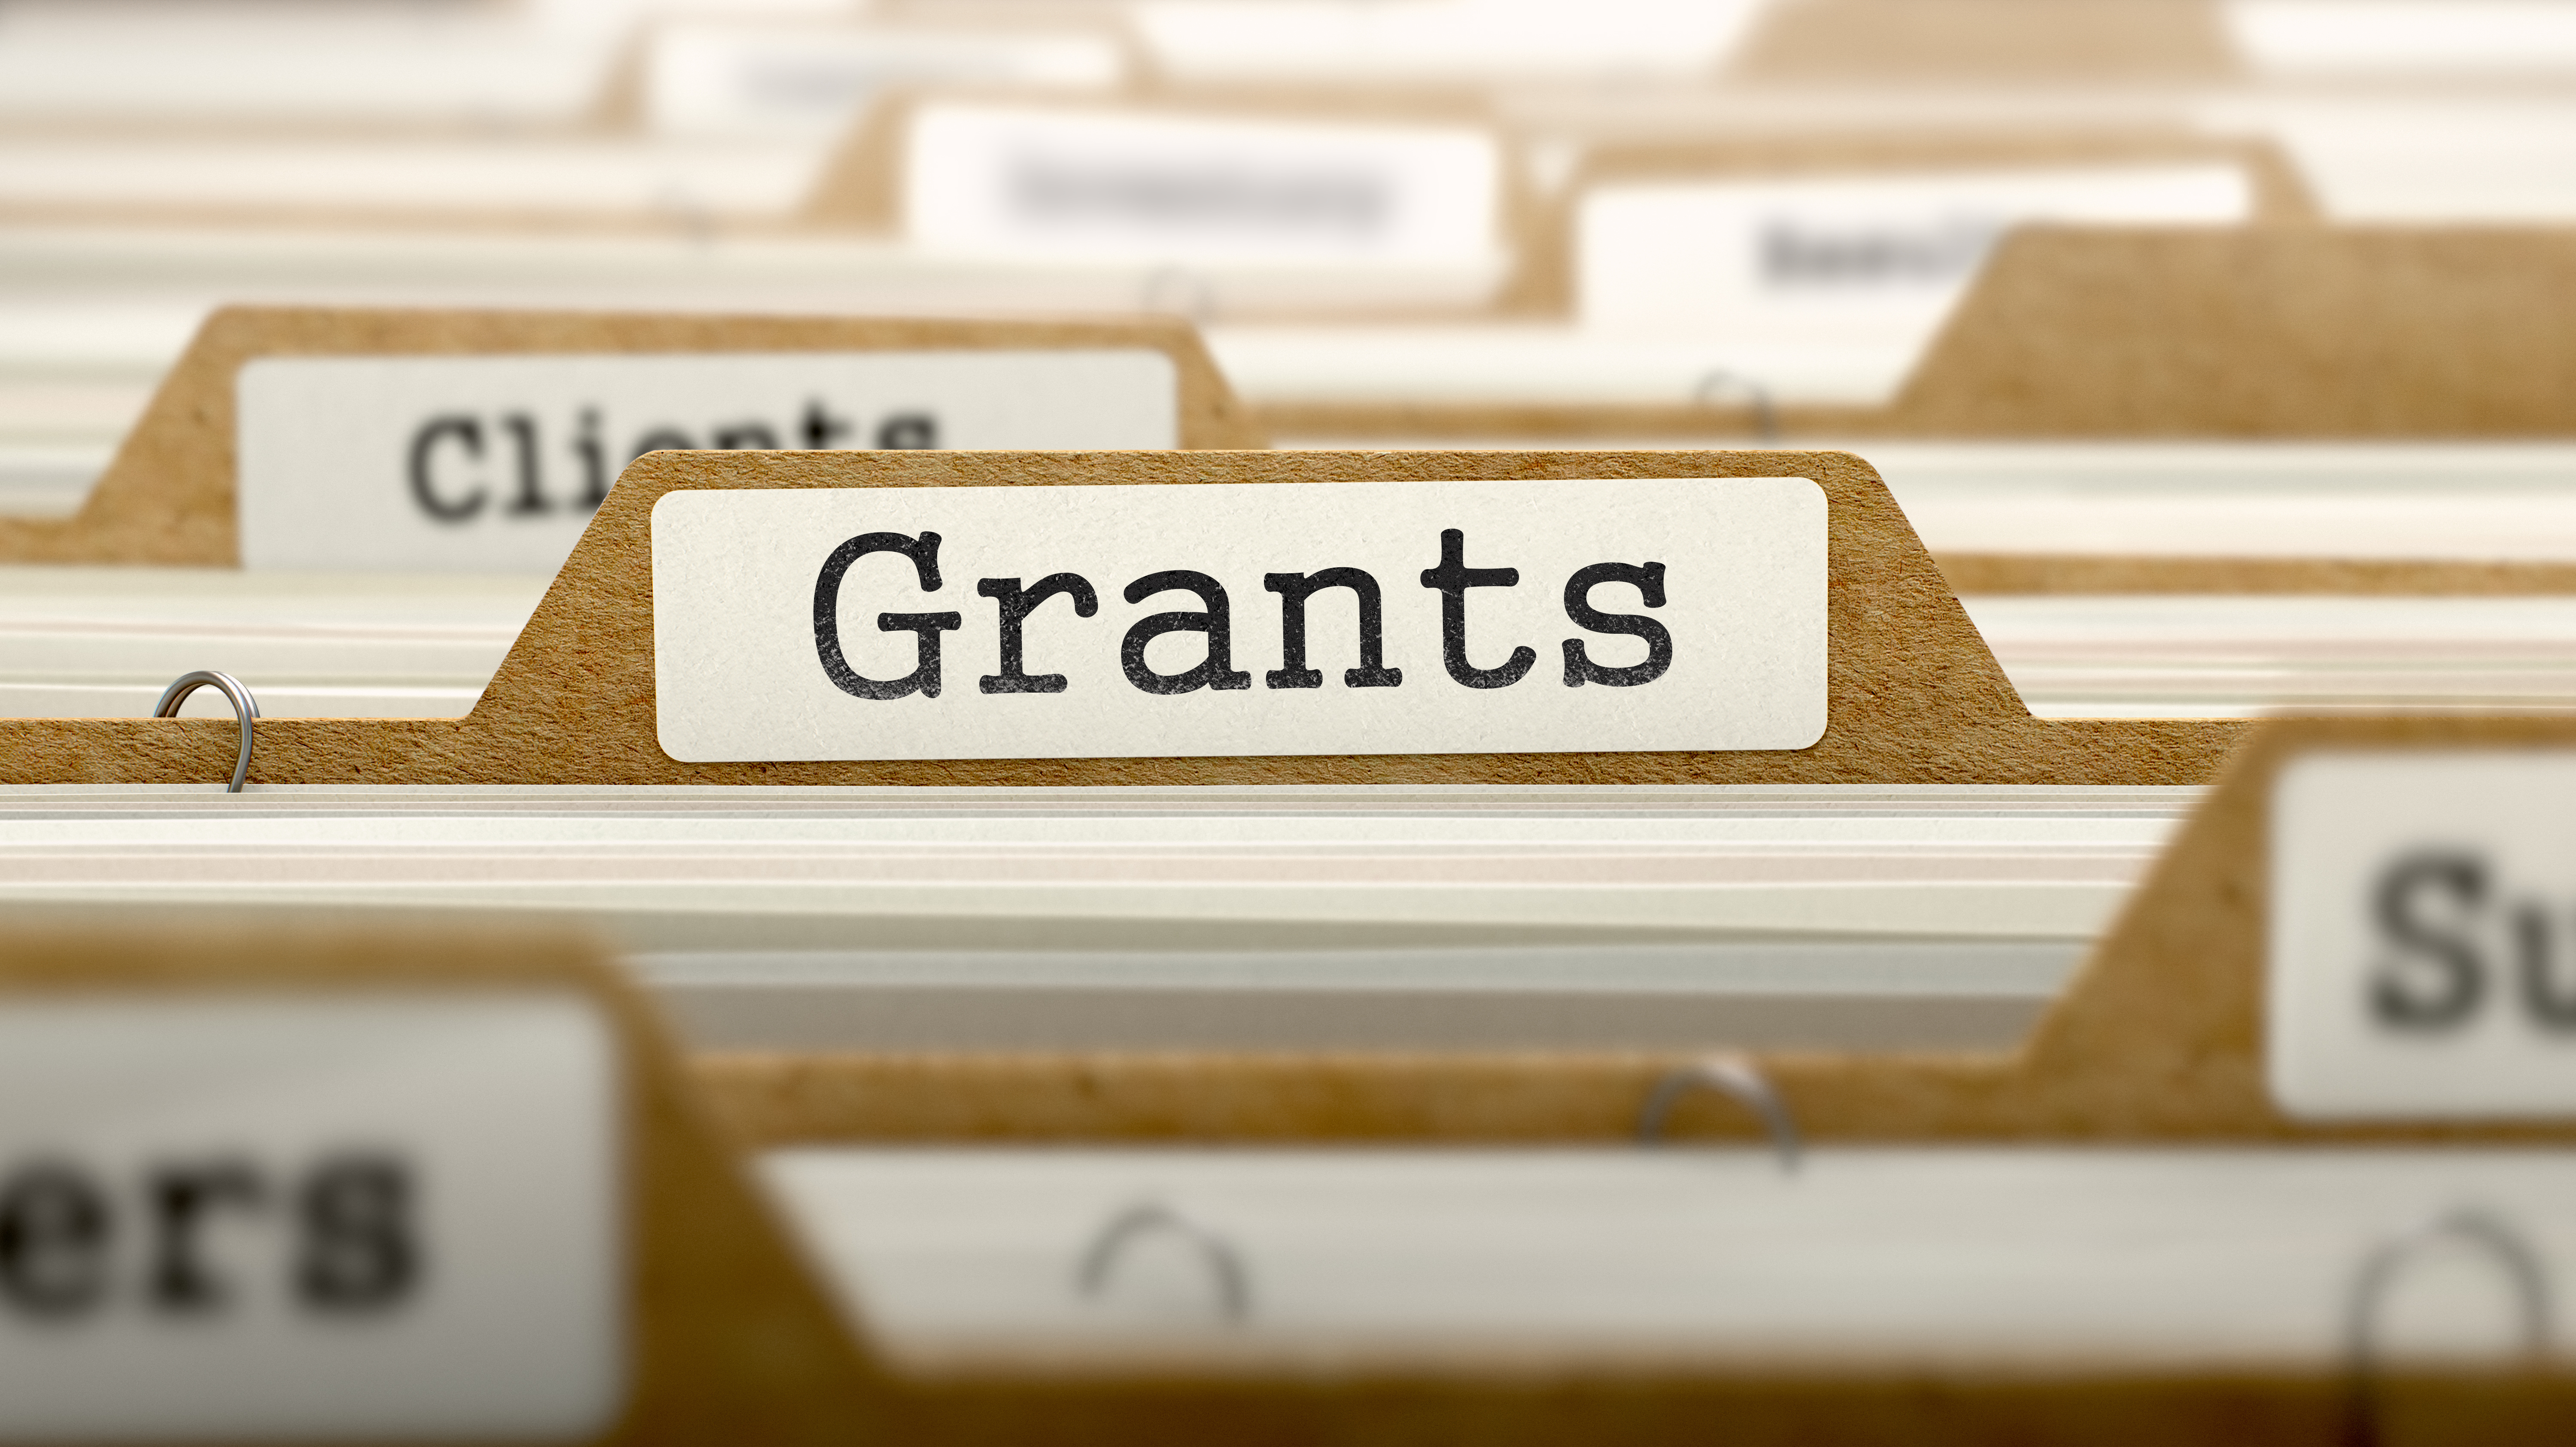 The winners of the FedEx Small Business Grant UK competition will be announced on 9 May